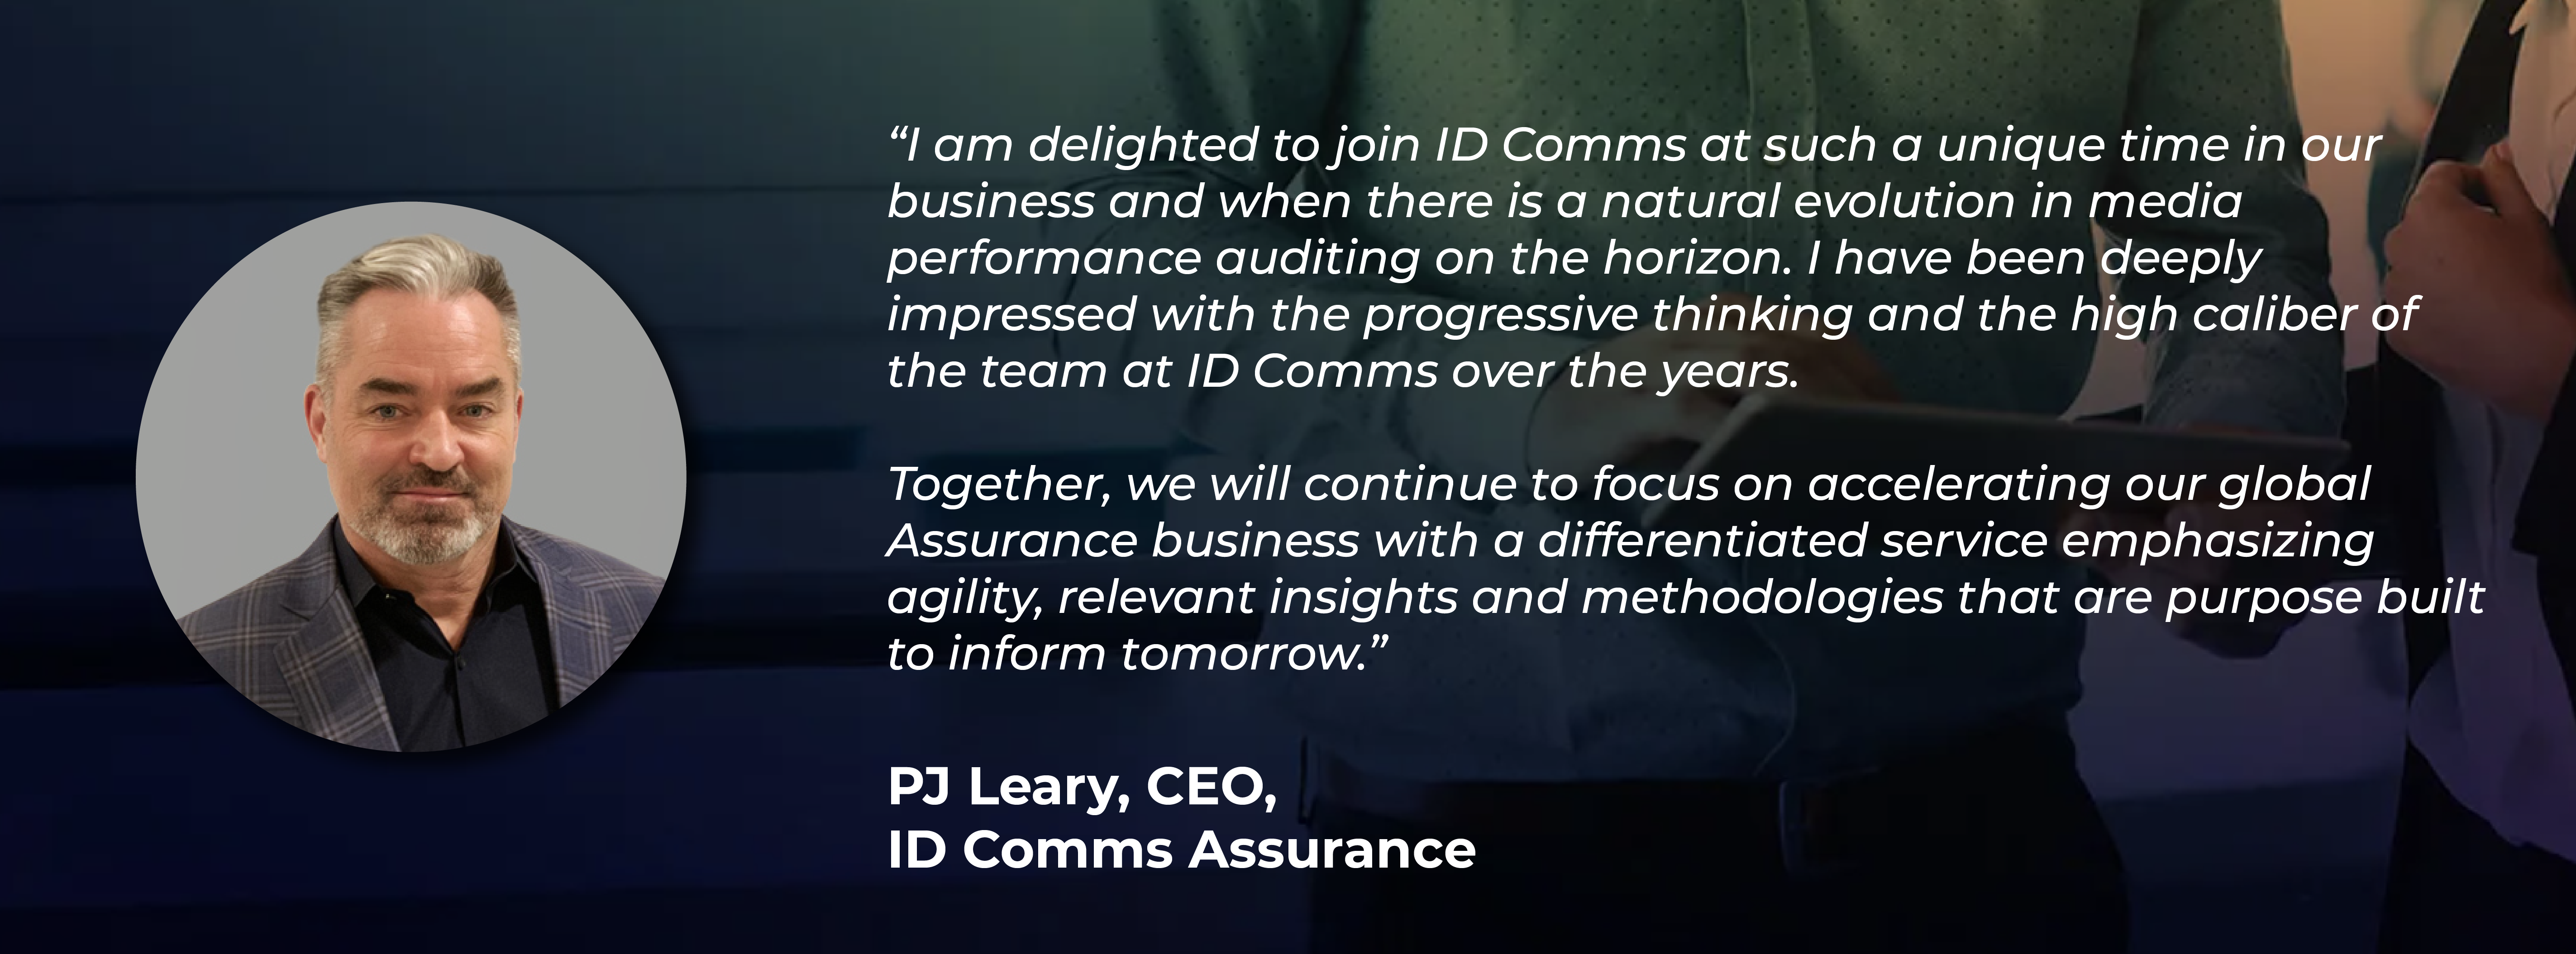 PJ Leary quote_ID Comms Assurance-01